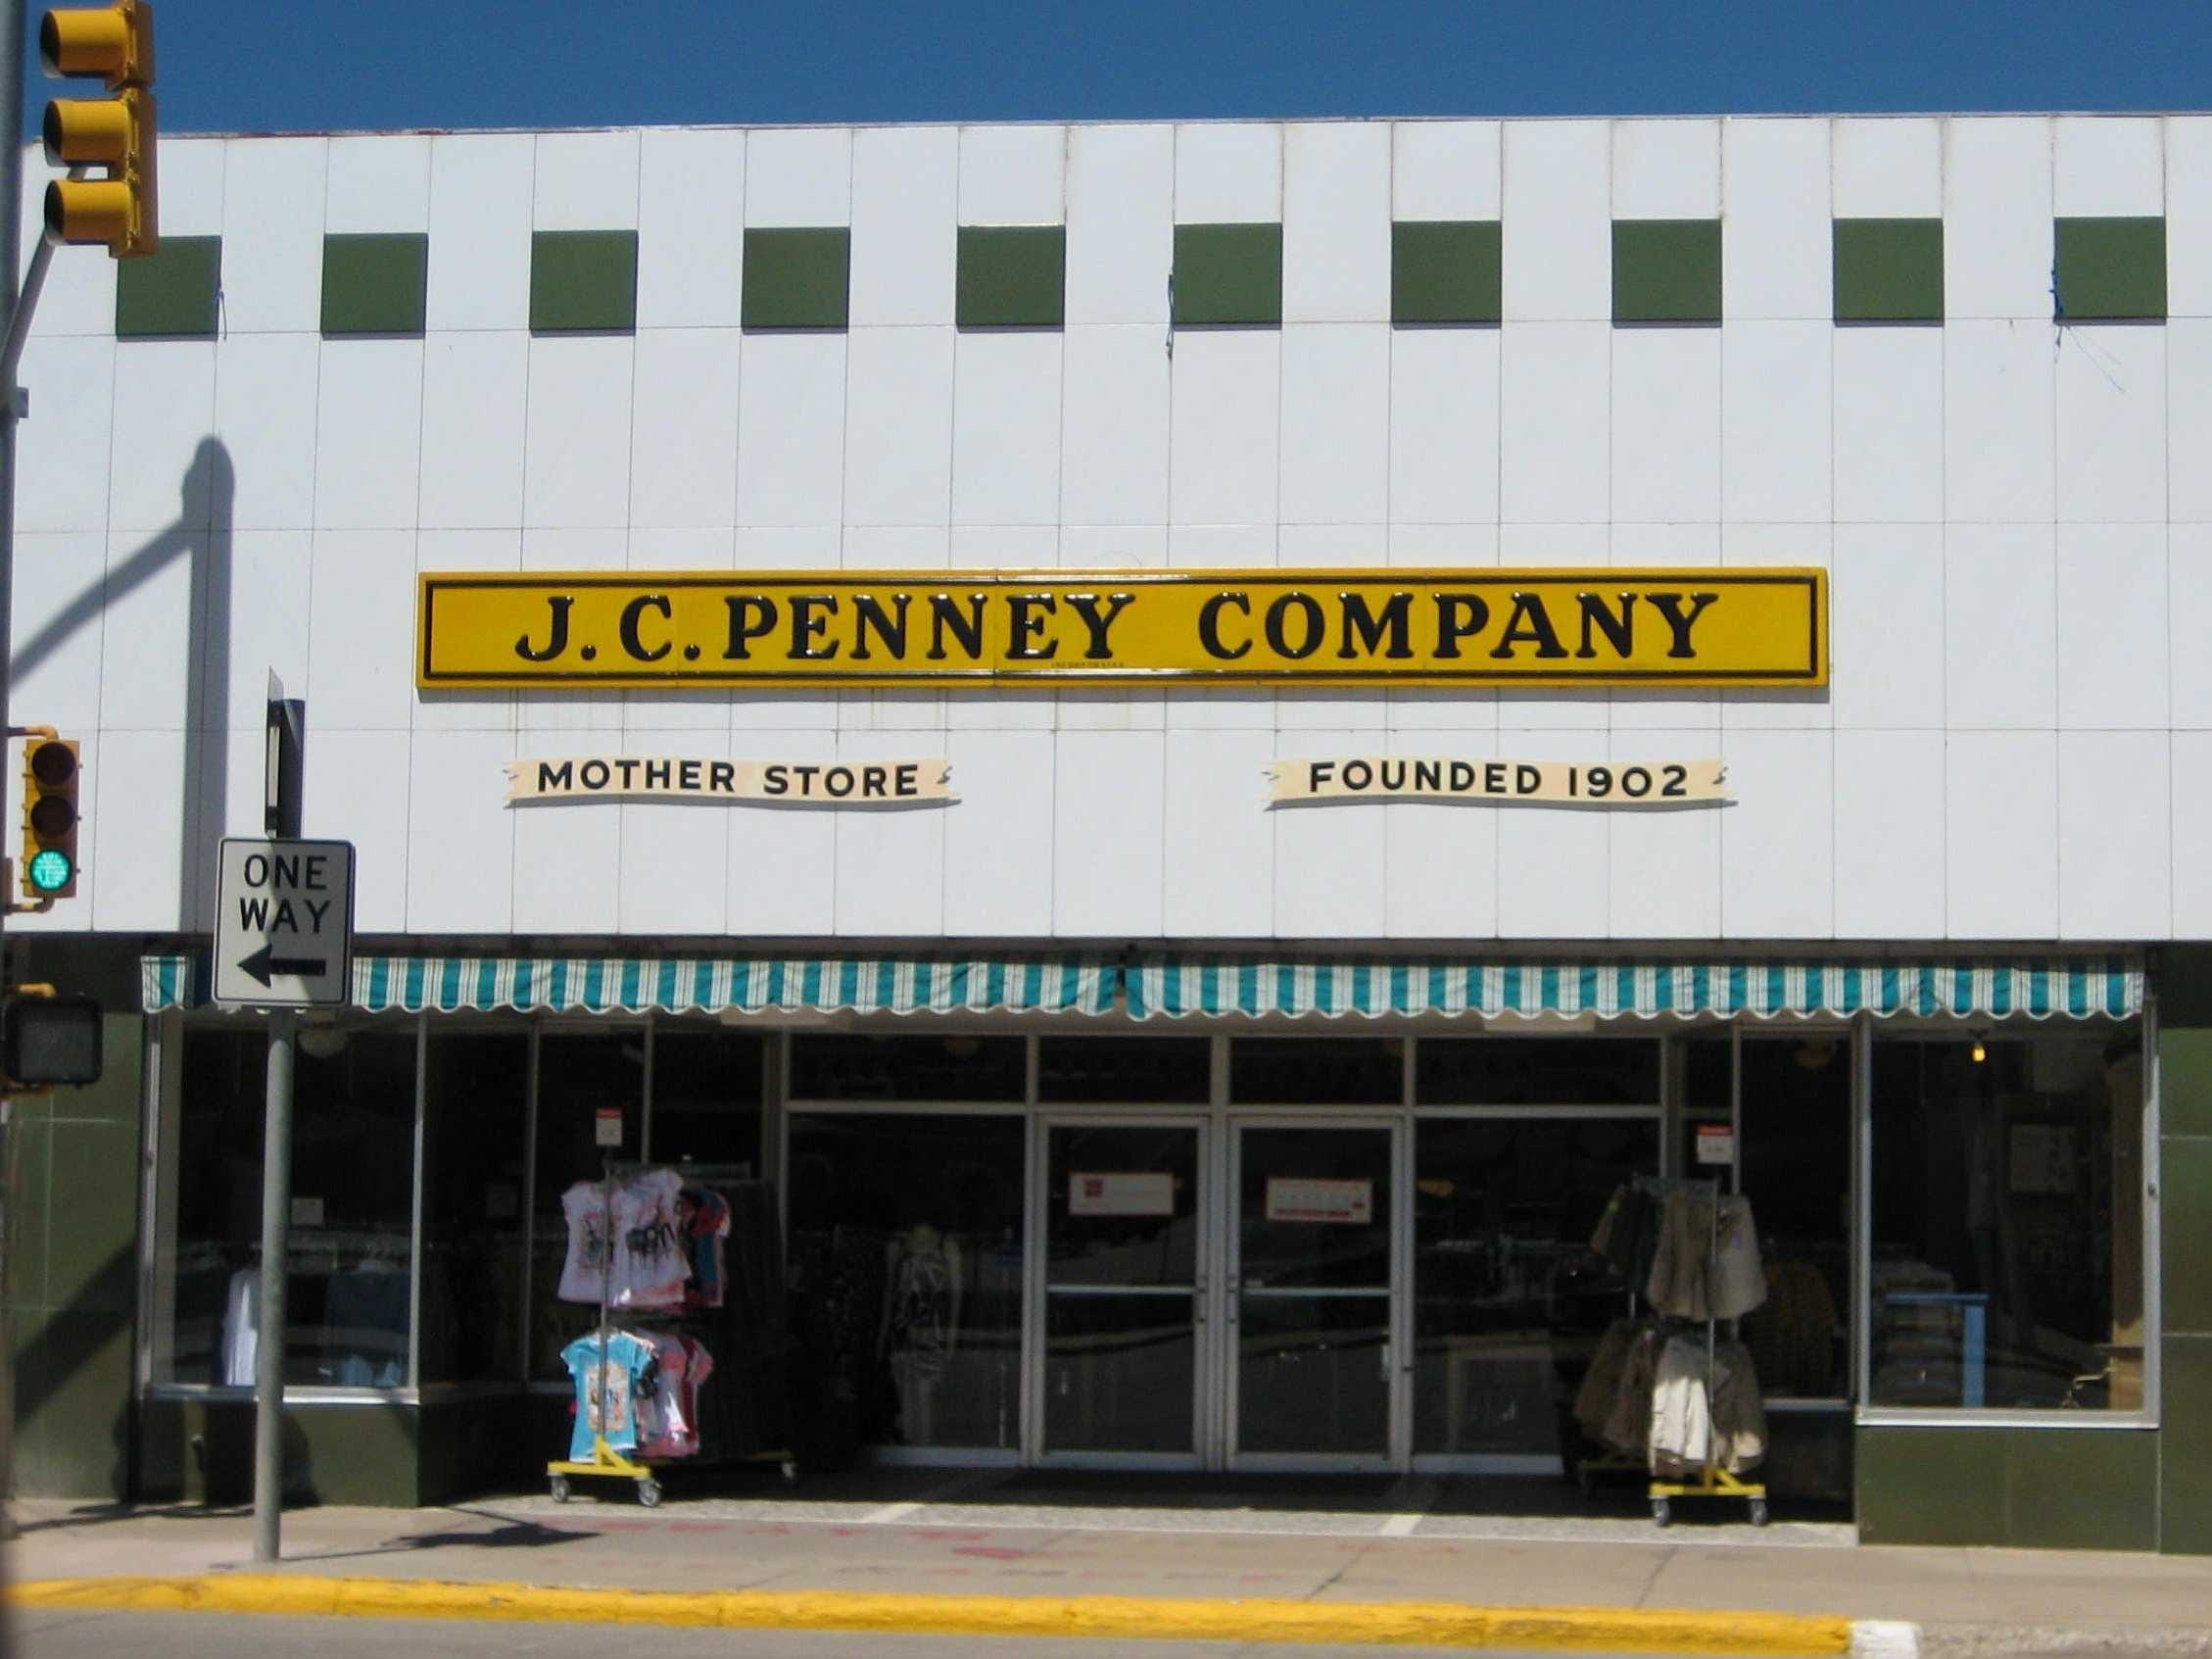 S&P Downgrades JC Penney Credit Rating - Business Insider